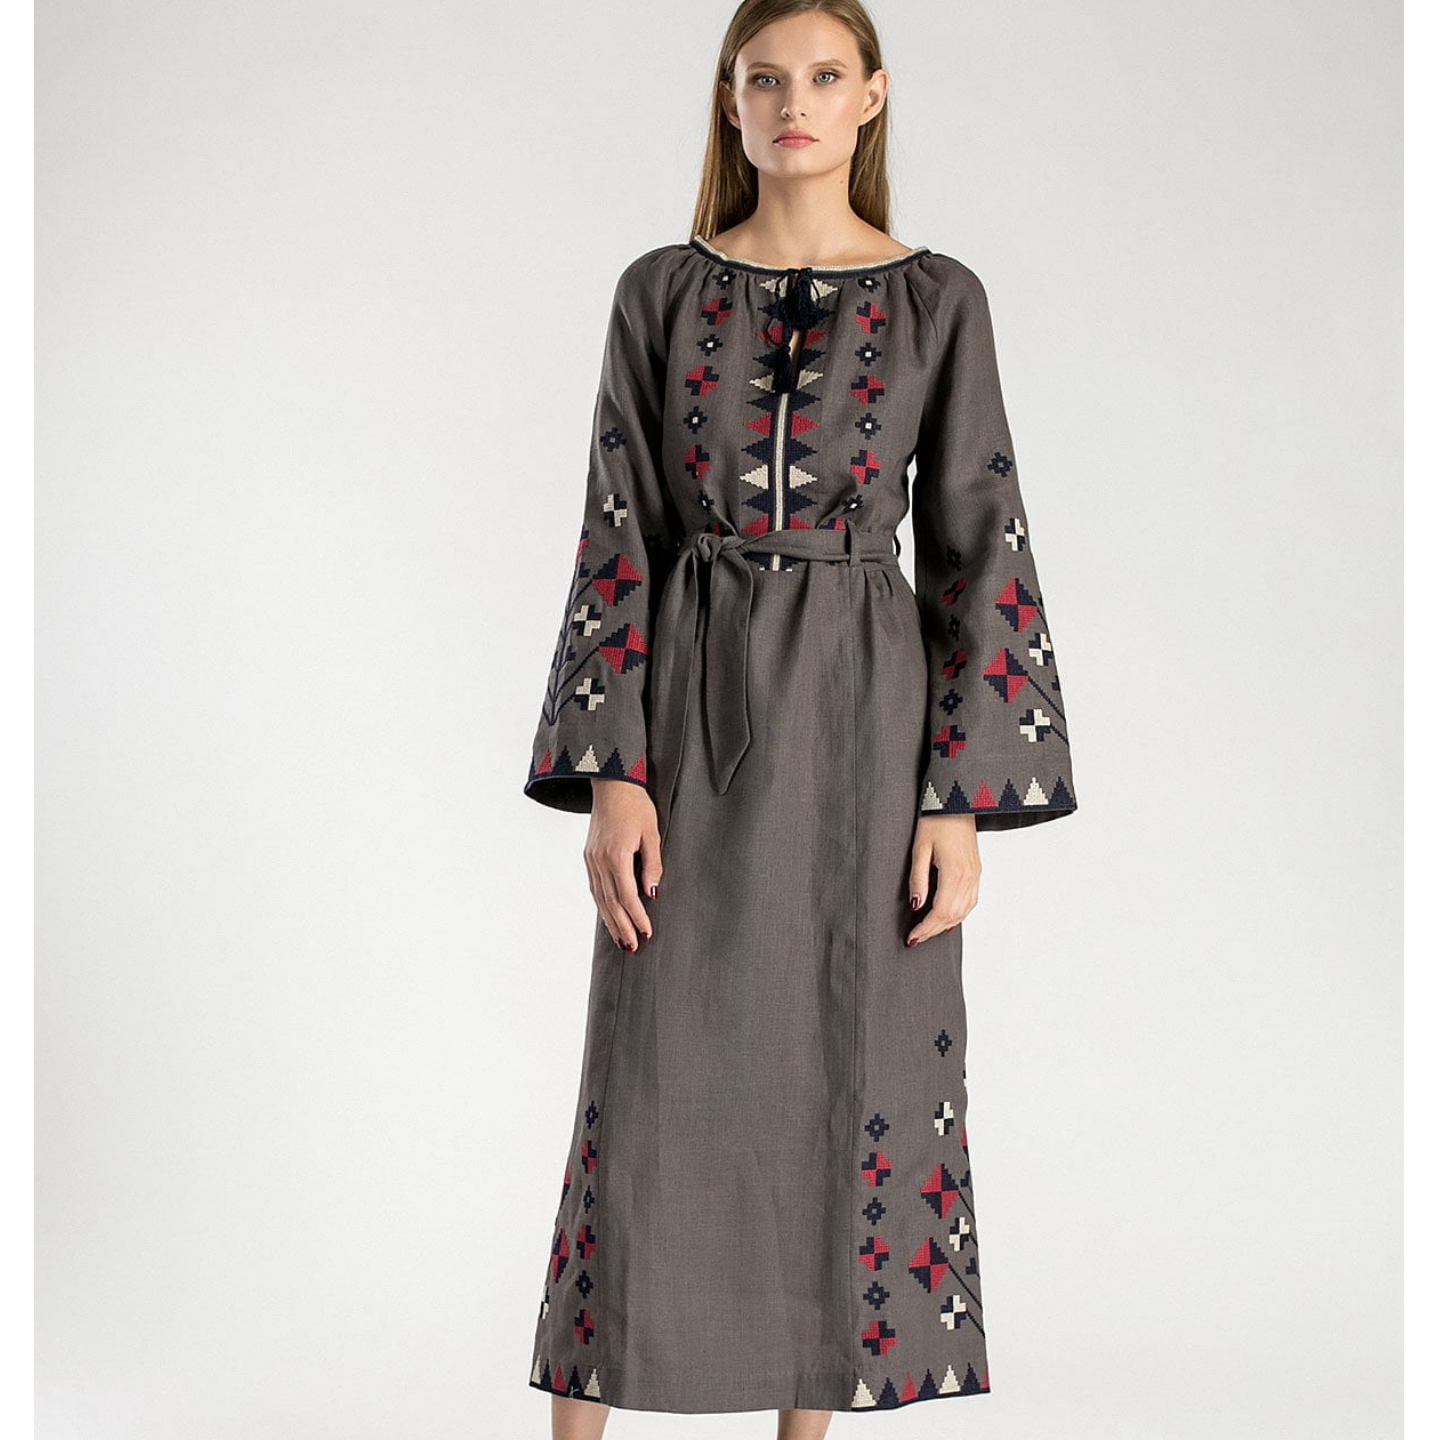 Long grey embroidered dress with a belt ETHNO5